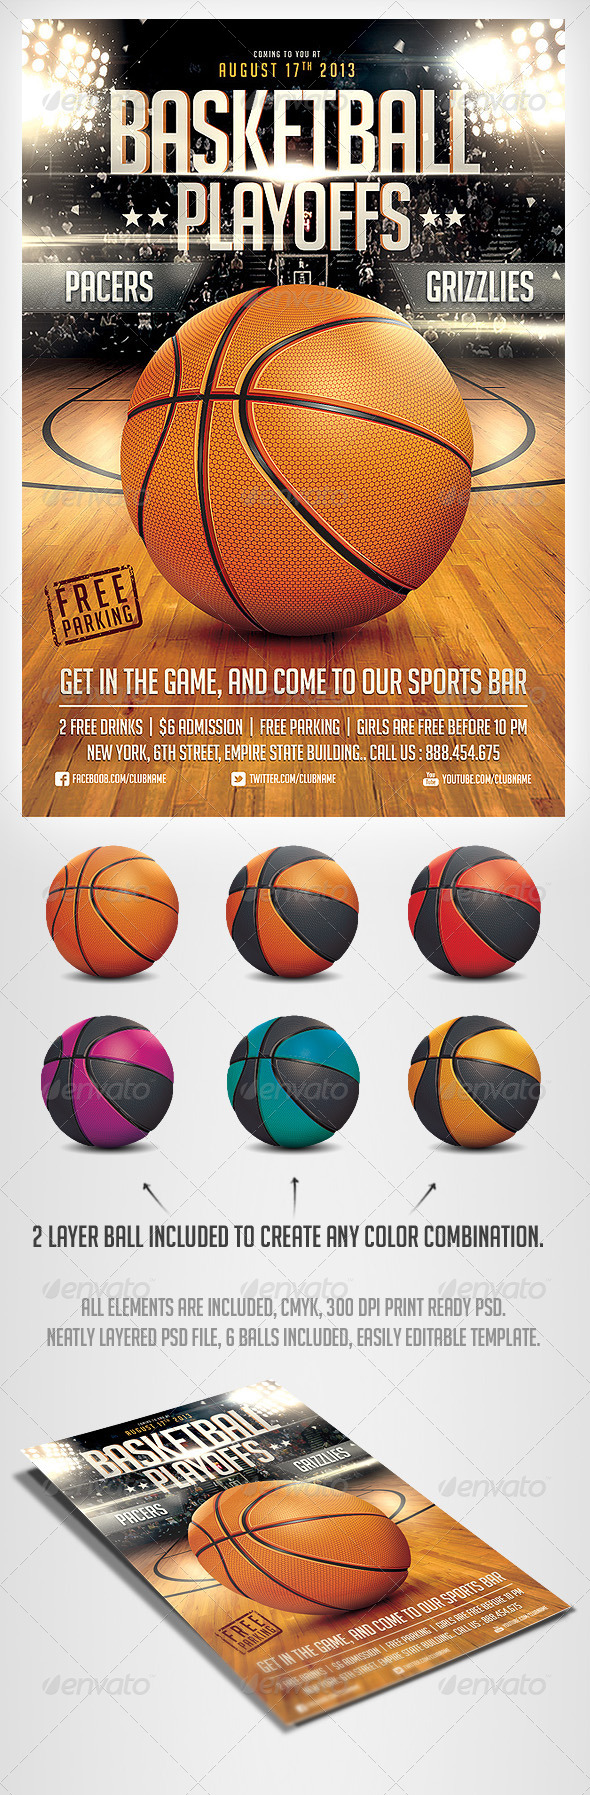 BasketBall Game Flyer Template | Pinterest | Basketball games, Psd ...